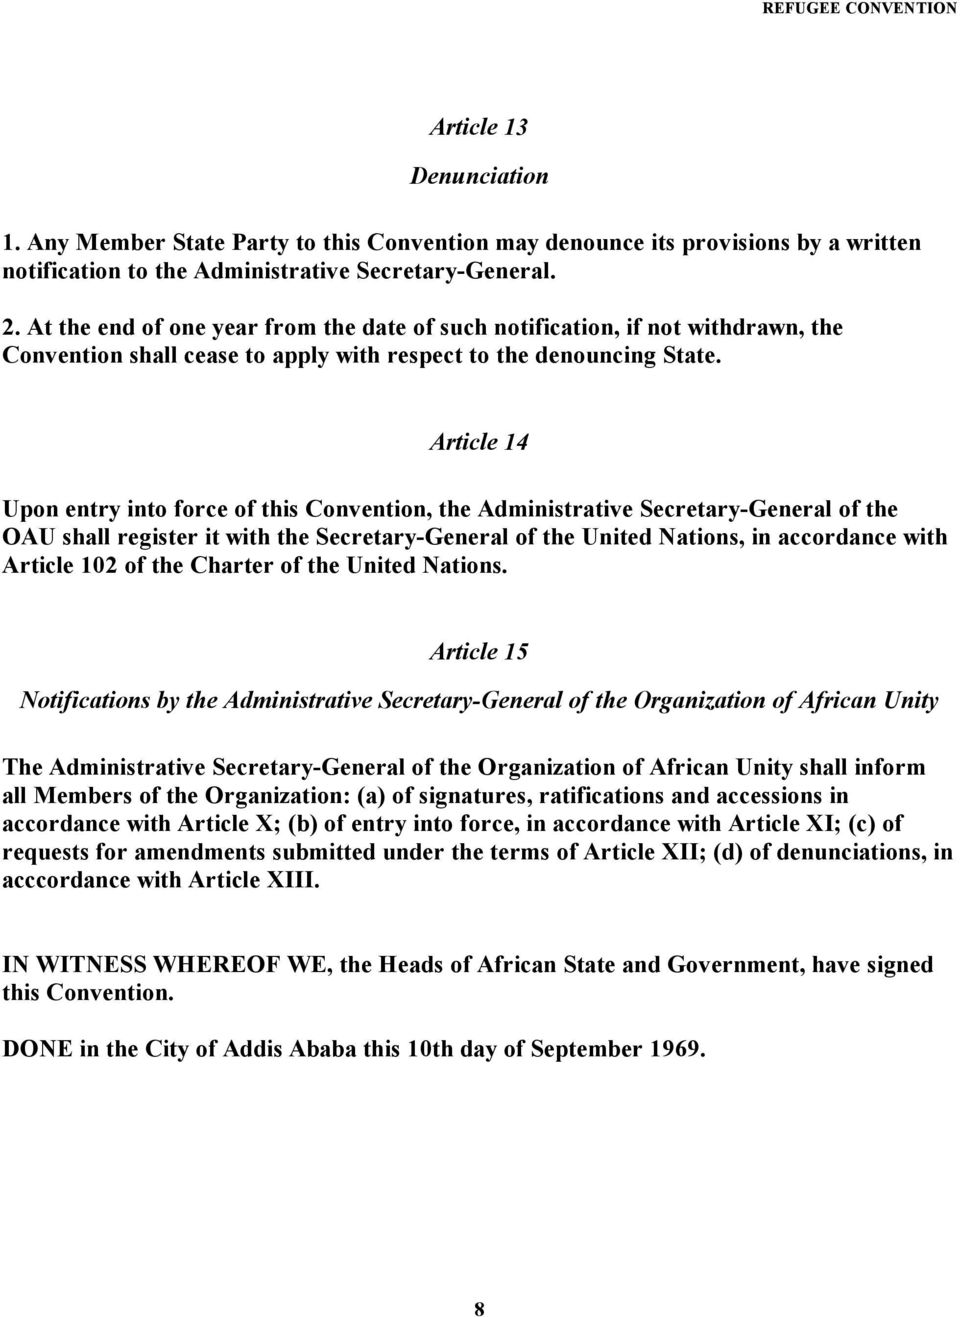 Article 14 Upon entry into force of this Convention, the Administrative Secretary-General of the OAU shall register it with the Secretary-General of the United Nations, in accordance with Article 102